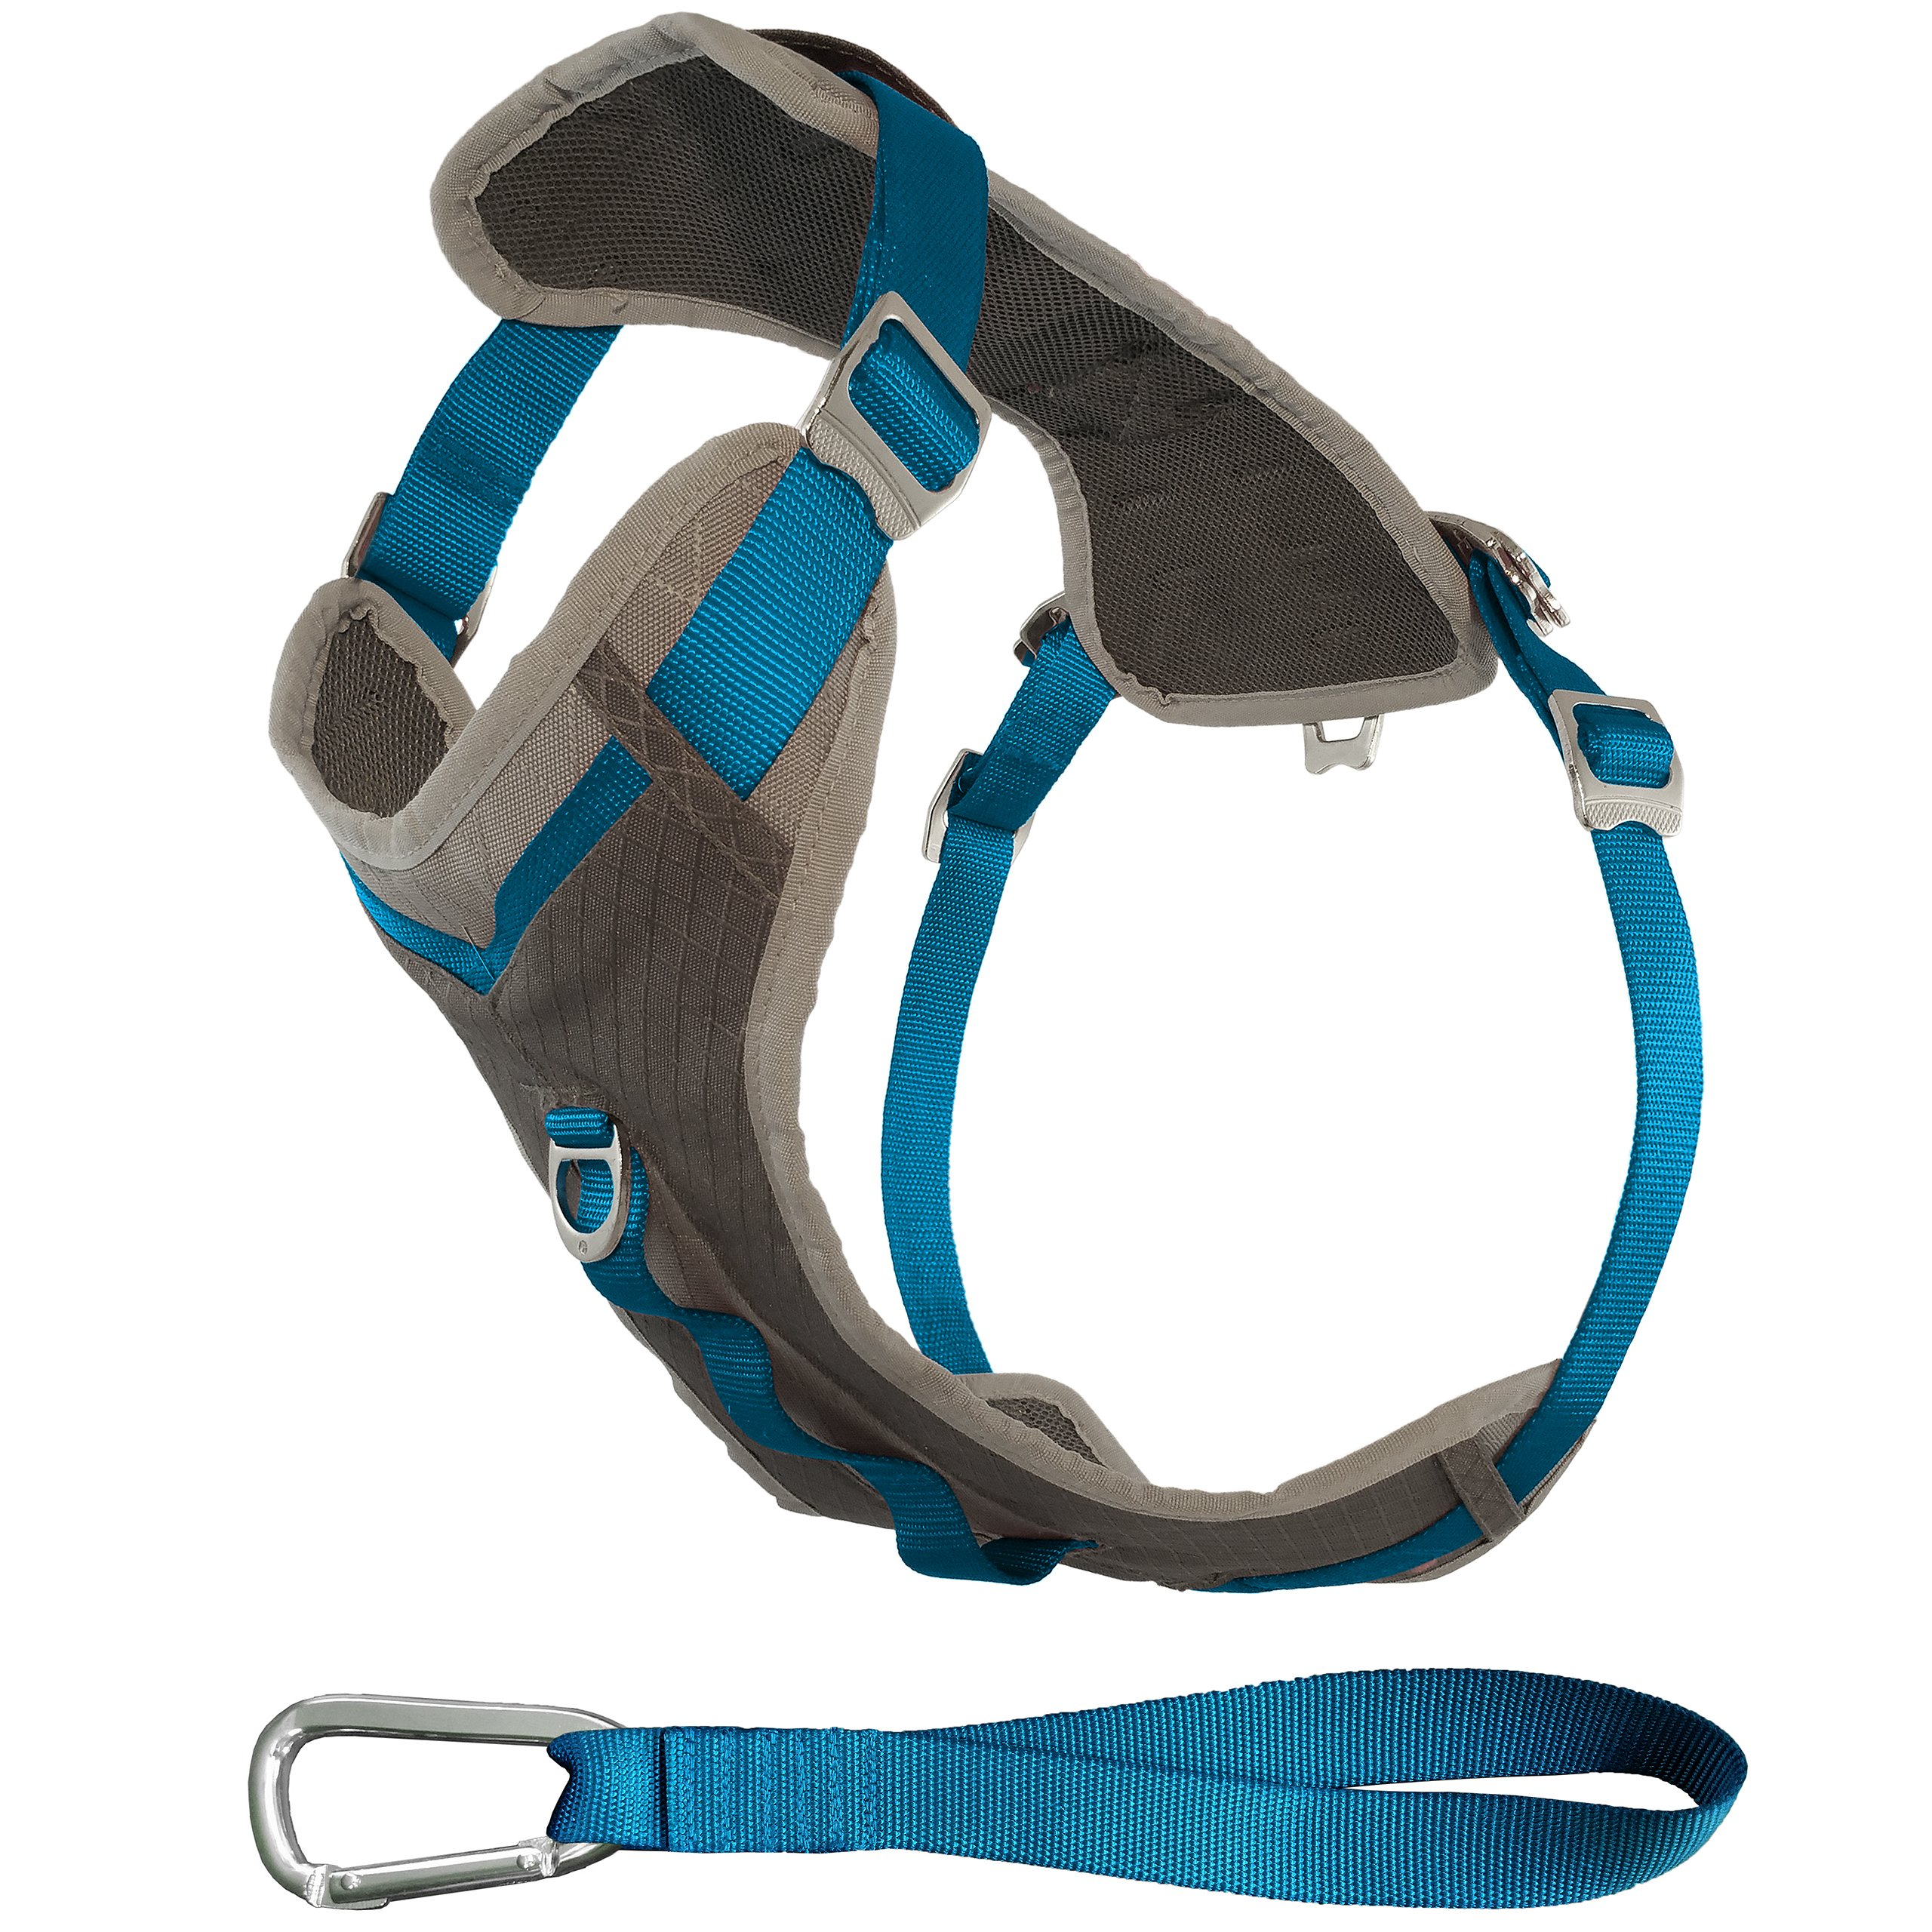 Kurgo Journey Multi-Use Dog Harness, Reflective Harness, Dog Running Harness, Dog Walking Harness, Dog Hiking Harness, Blue/Grey, X-Large